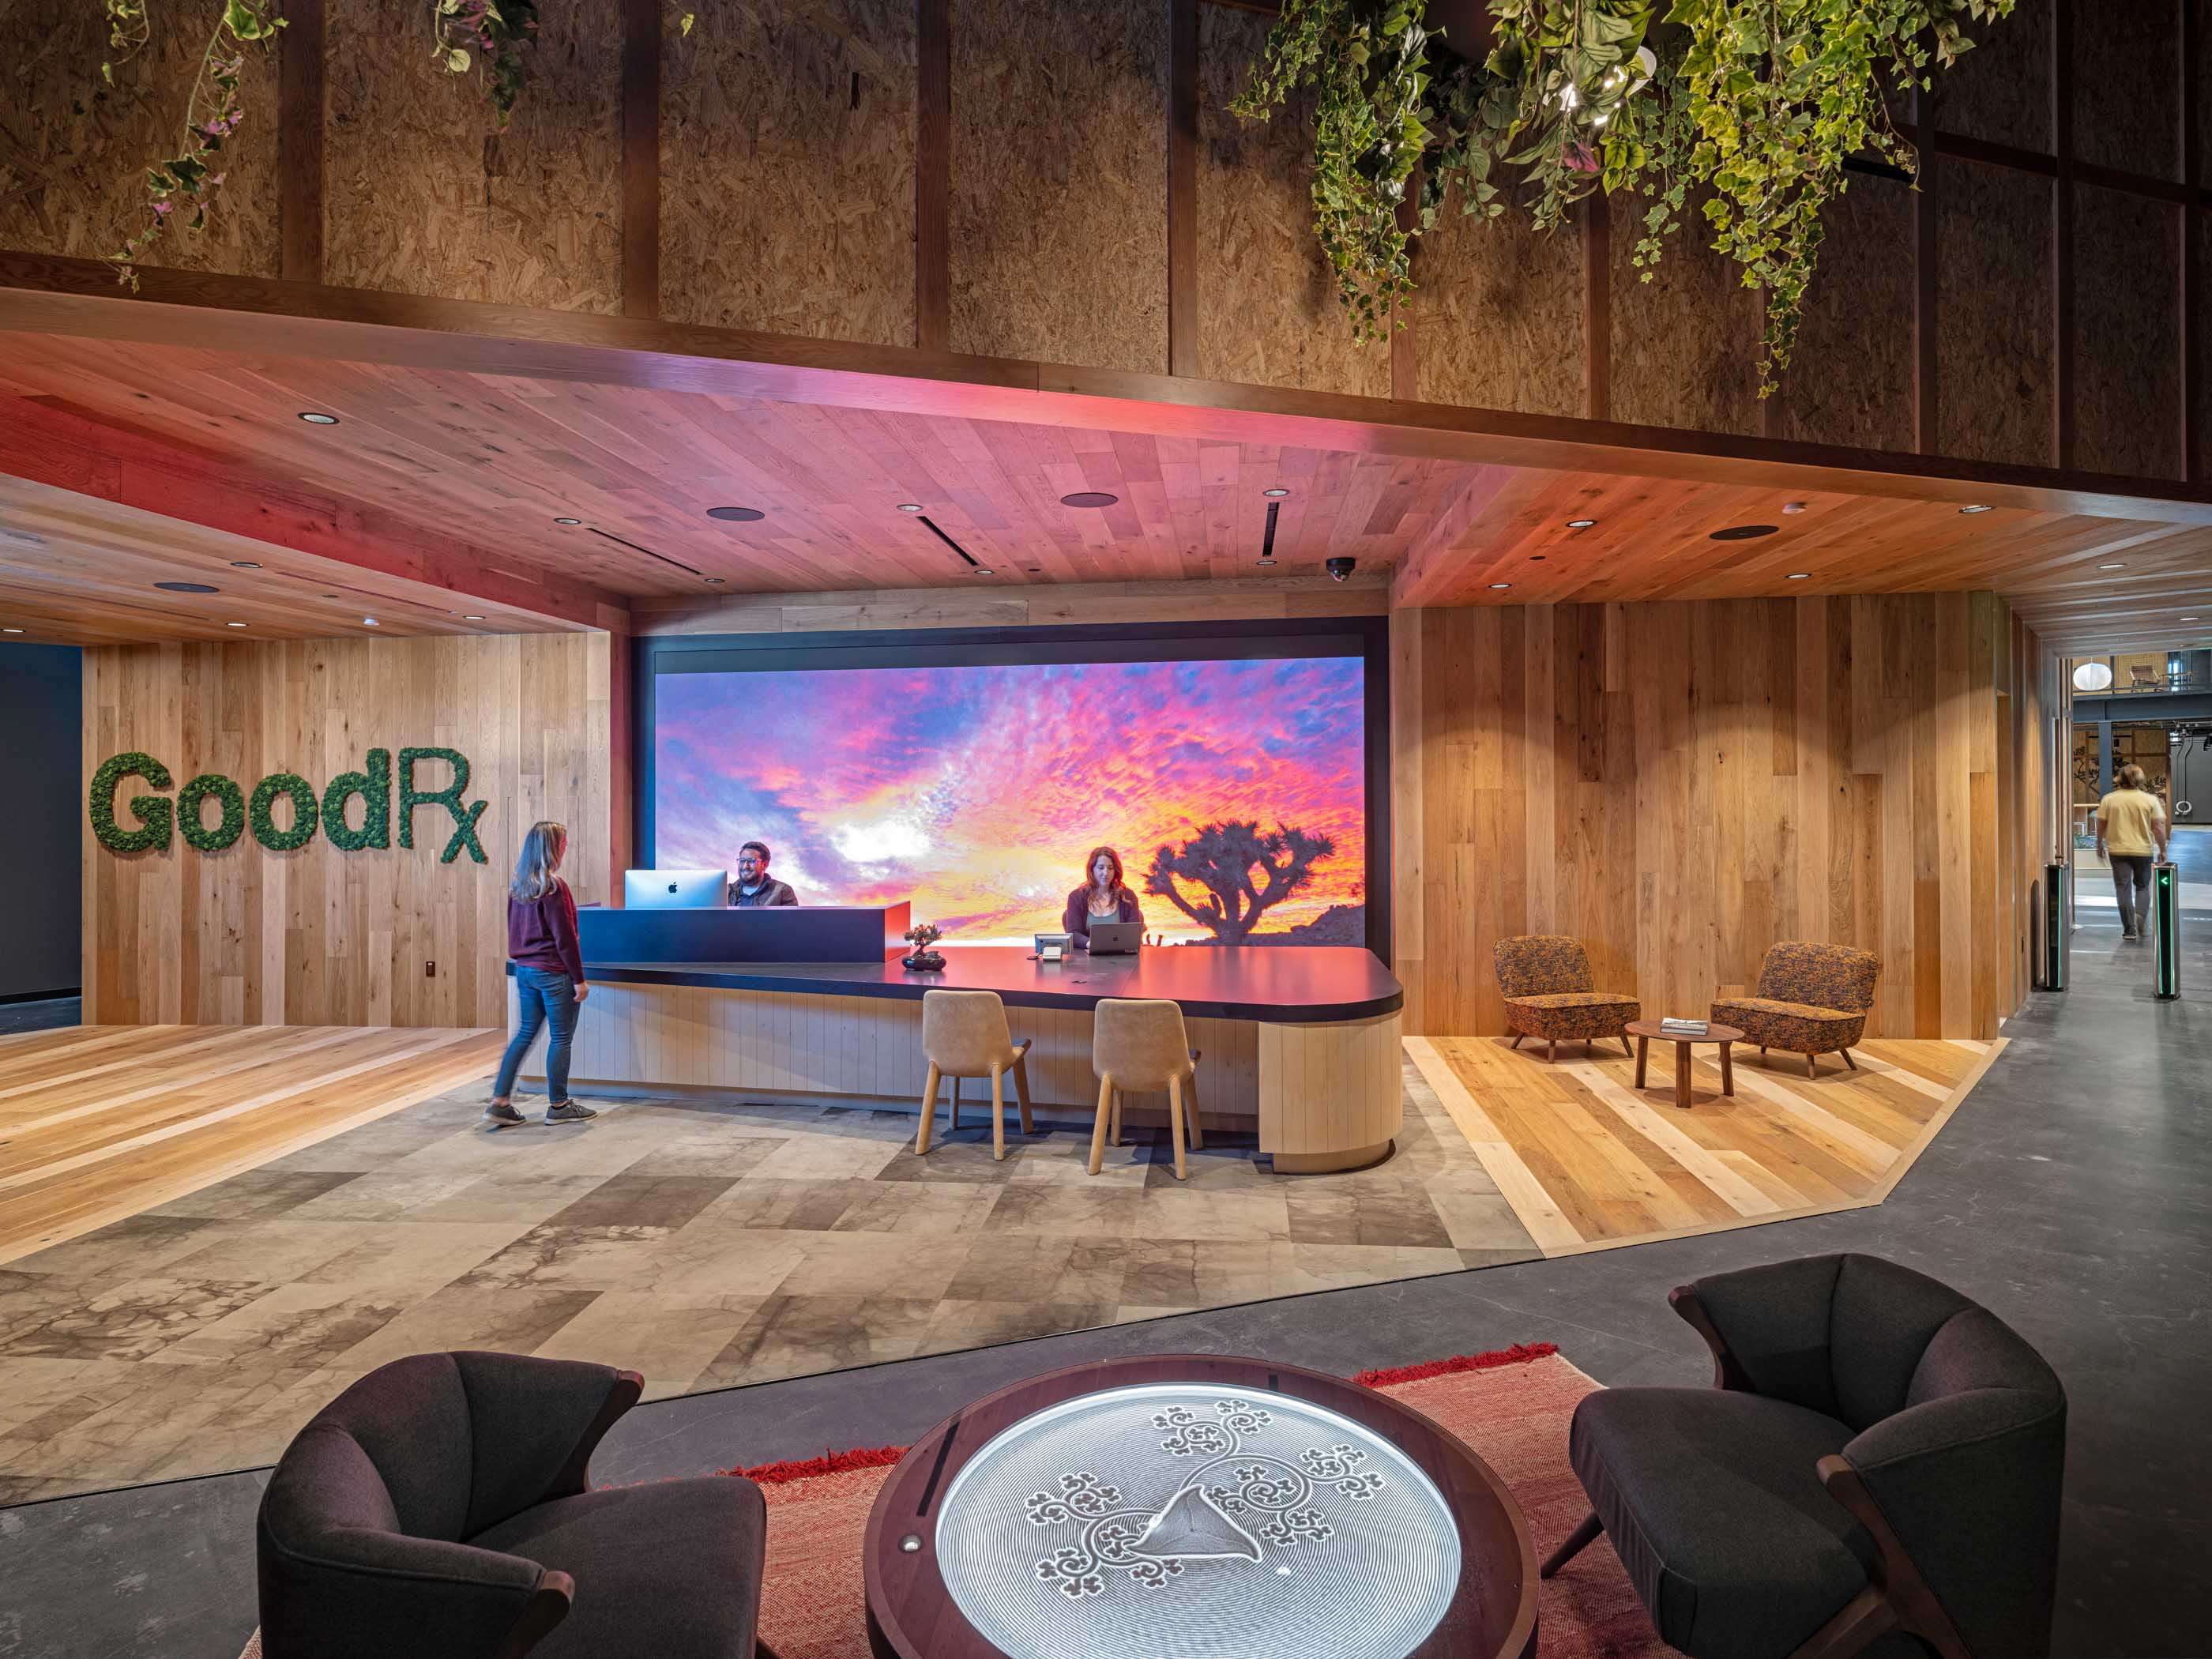 GoodRx lobby front desk with screen showing a sunset on the wall and plants hanging from the ceiling